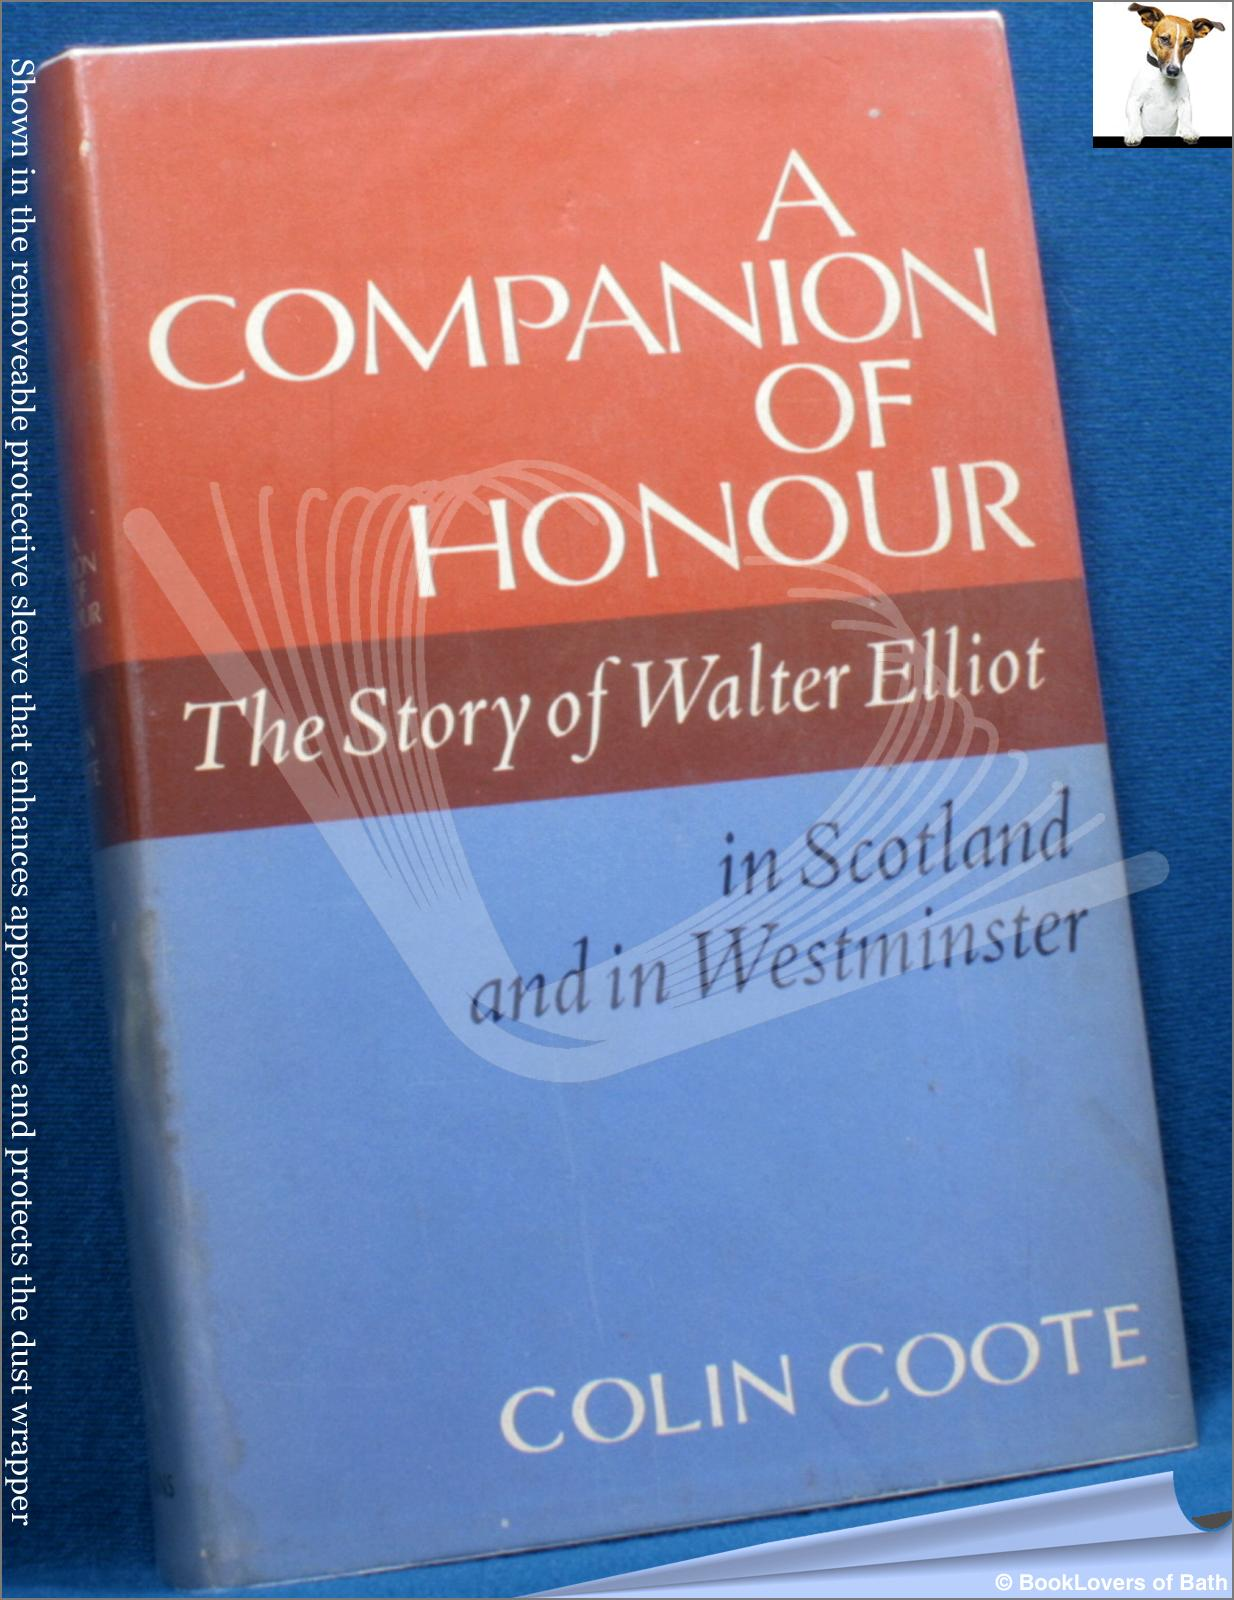 A Companion of Honour: The Story of Walter Elliot in Scotland and in Westminster - Colin Coote